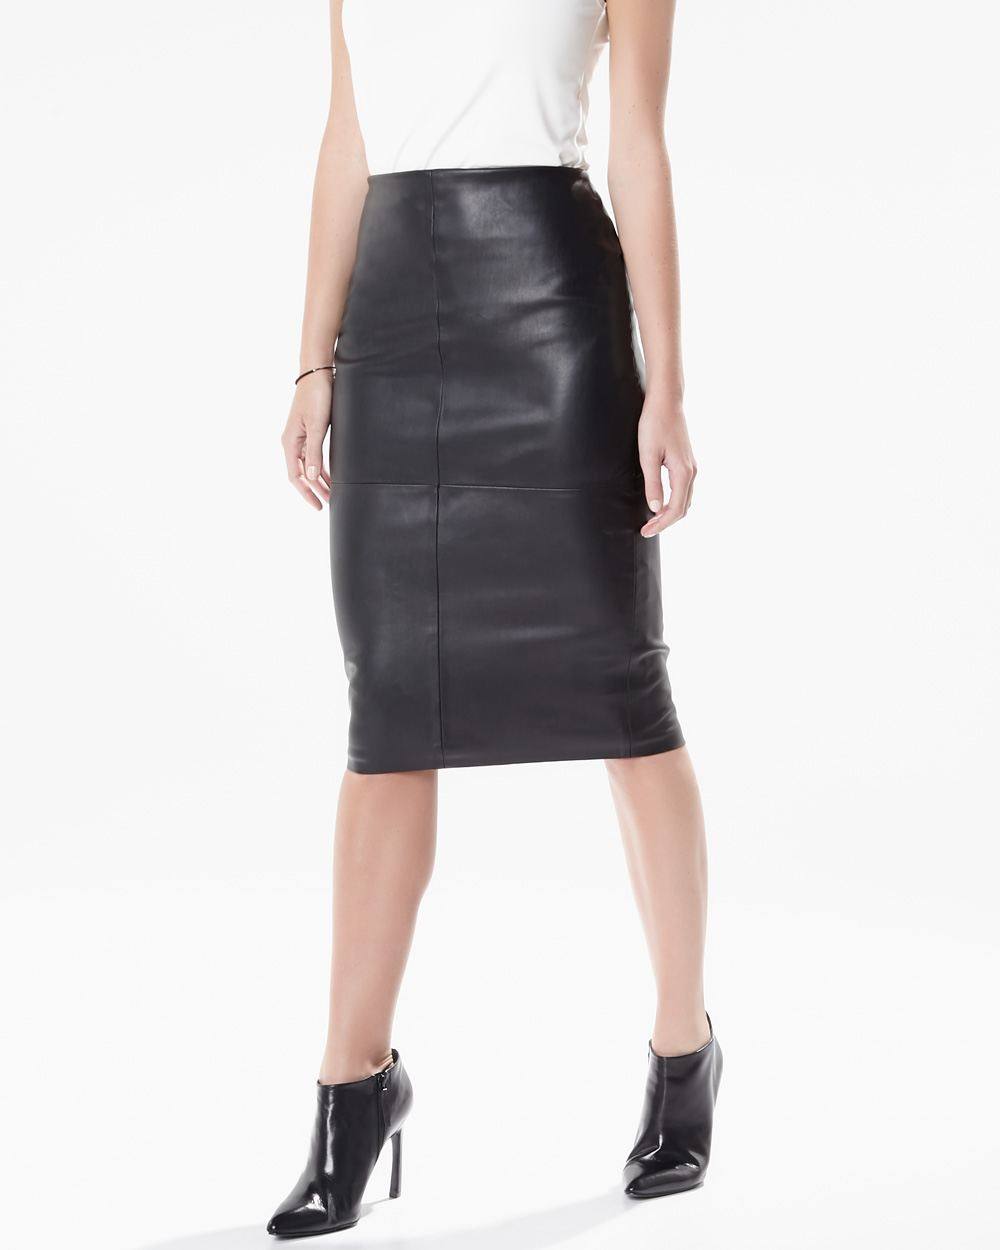 Free shipping and guaranteed authenticity on Matty M Black Vegan Leather Pencil Skirt Size 6 (S, 28)Great little vegan leather knee-length skirt. Form.